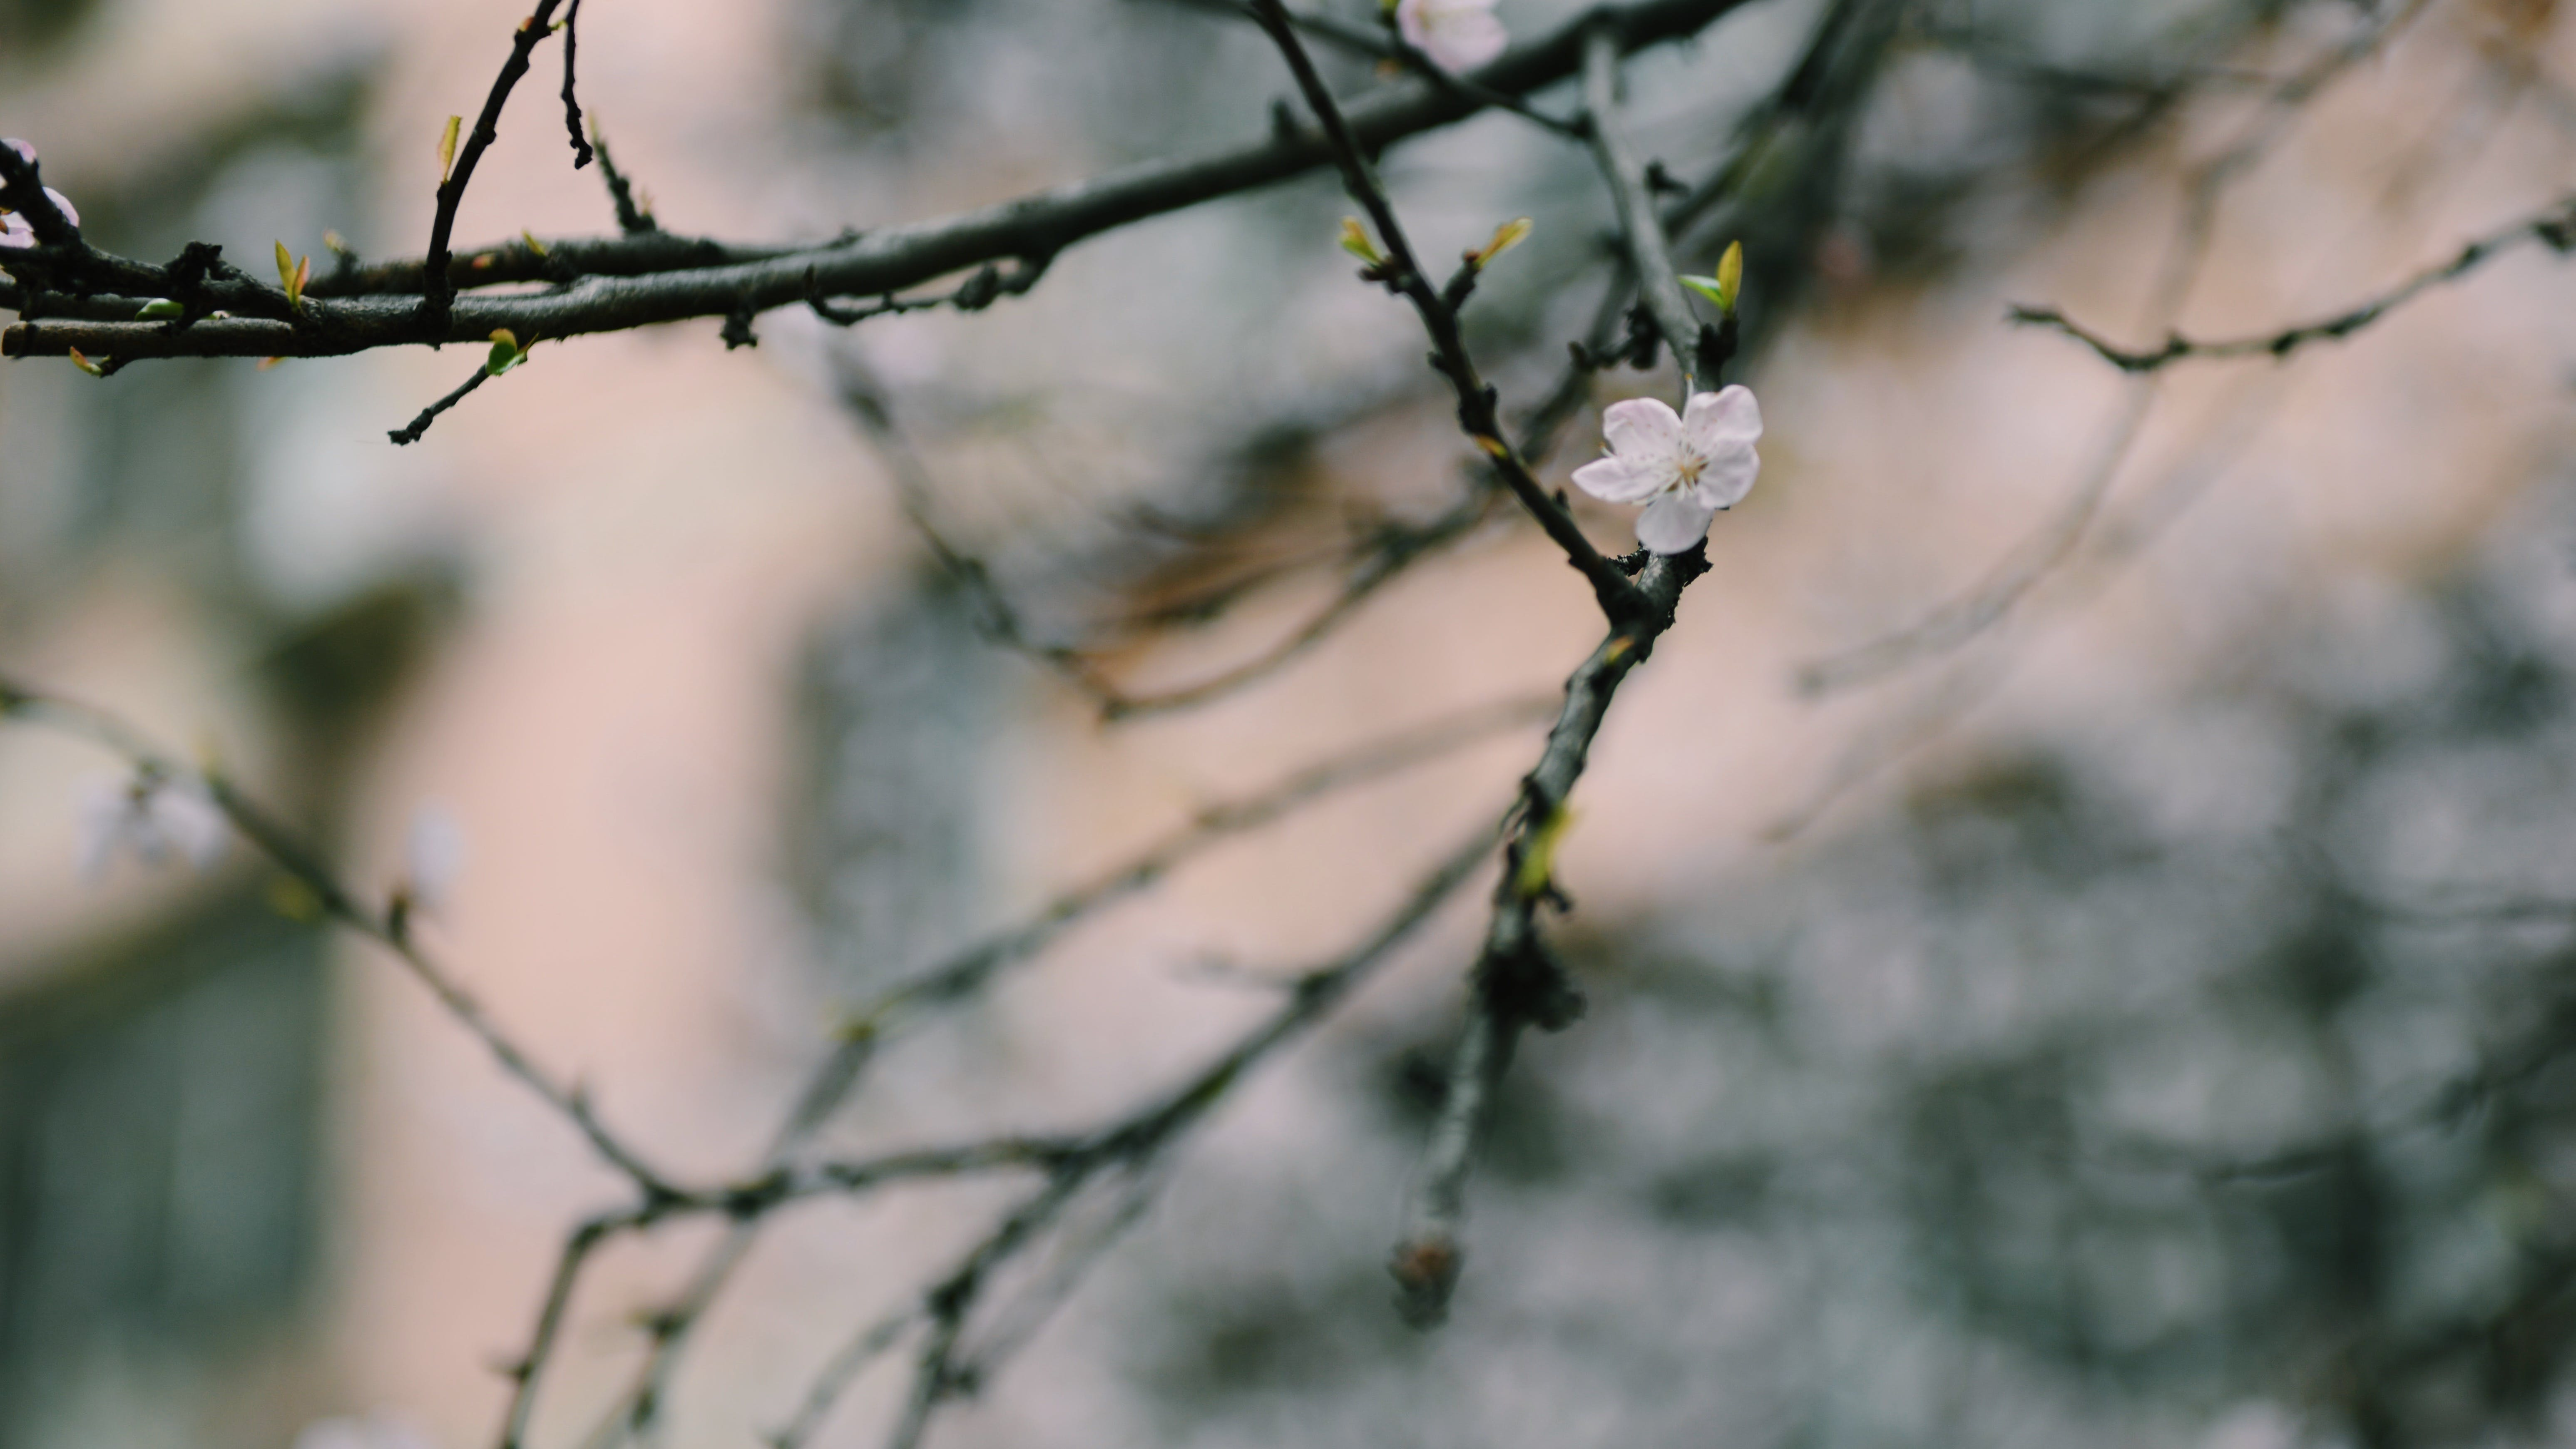 White Petaled Flower on Black Branch